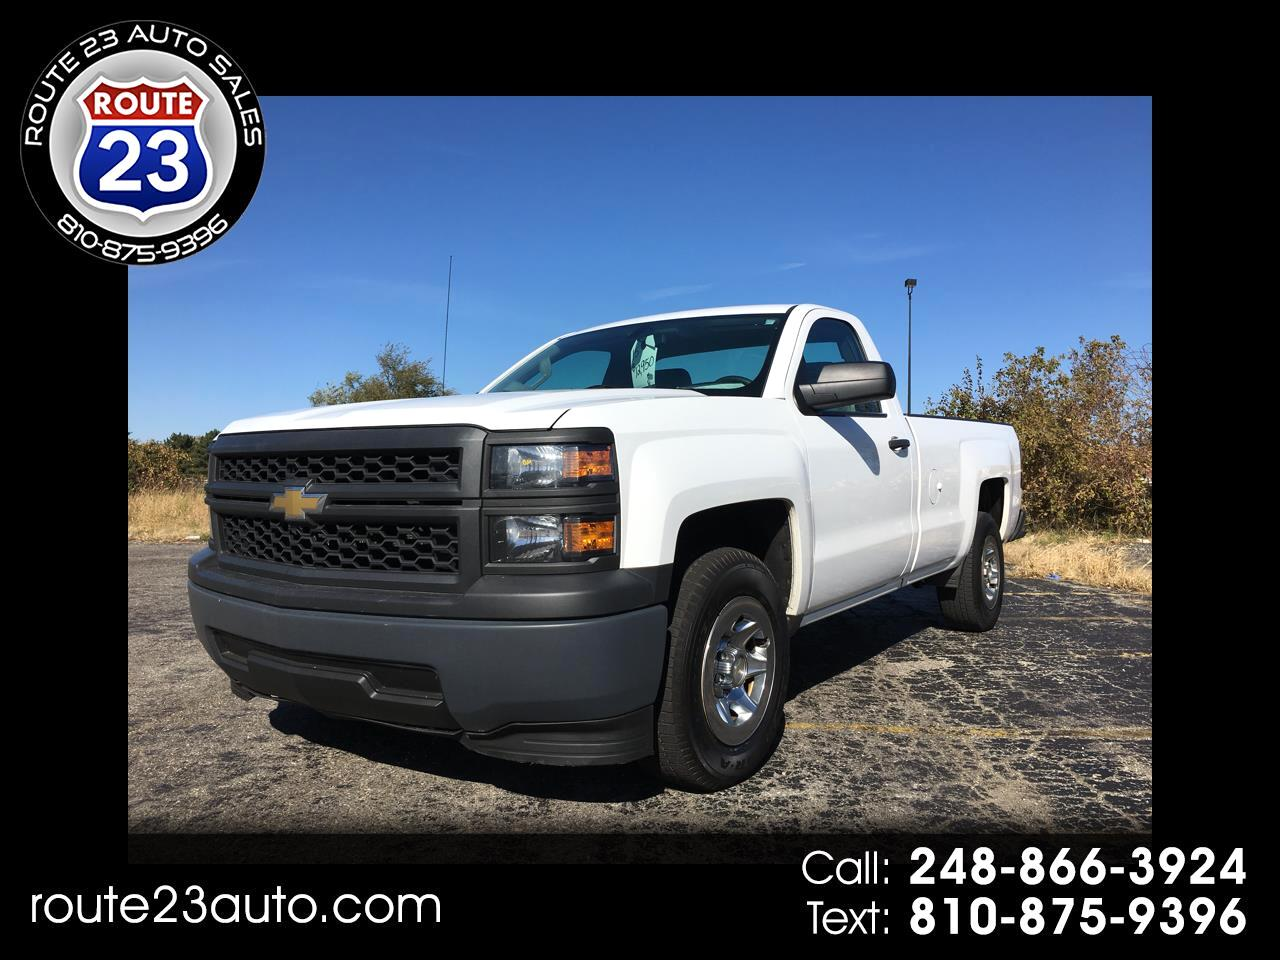 2015 Chevrolet Silverado 1500 1LT Regular Cab Long Box 2WD